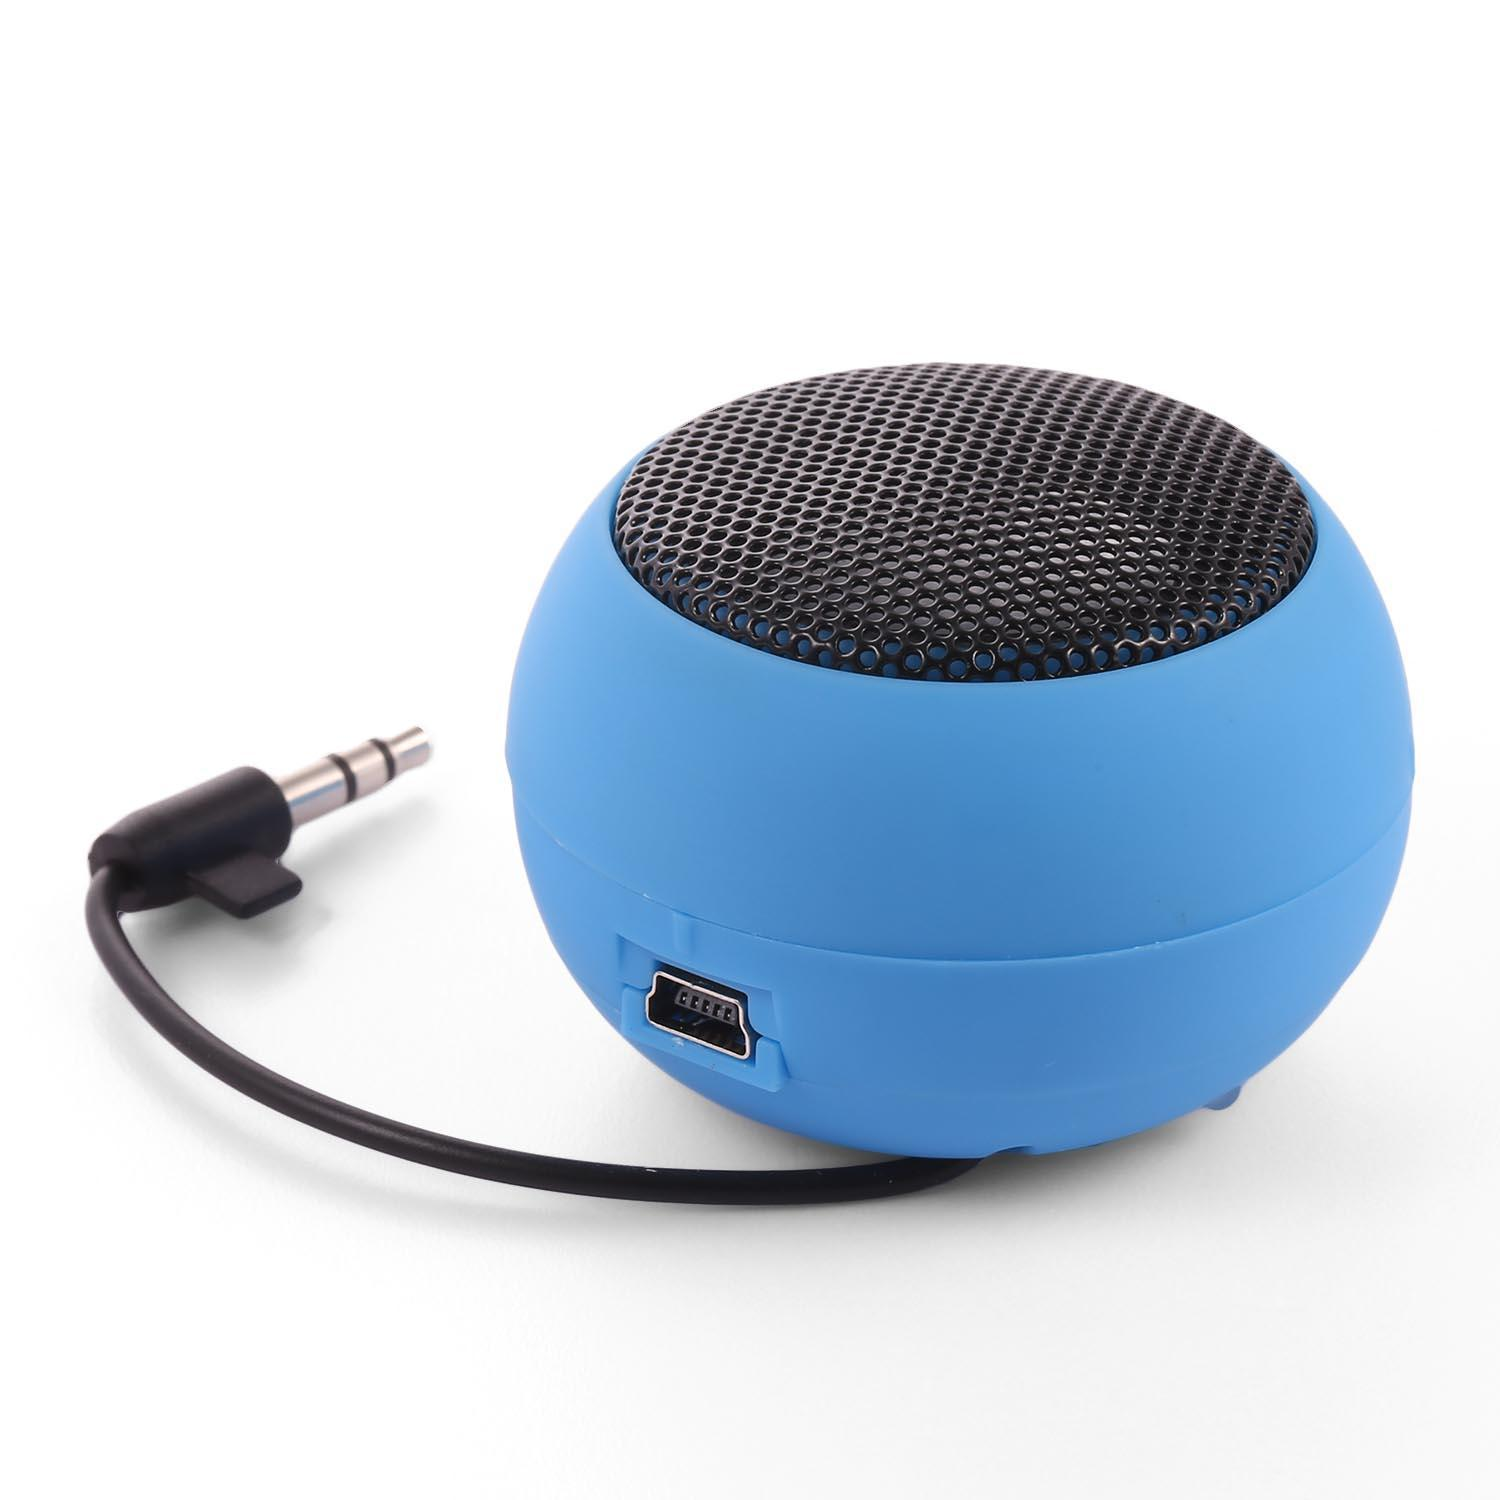 New Smartphone Tablet Laptop Super Portable Mini Speaker BEDYDS